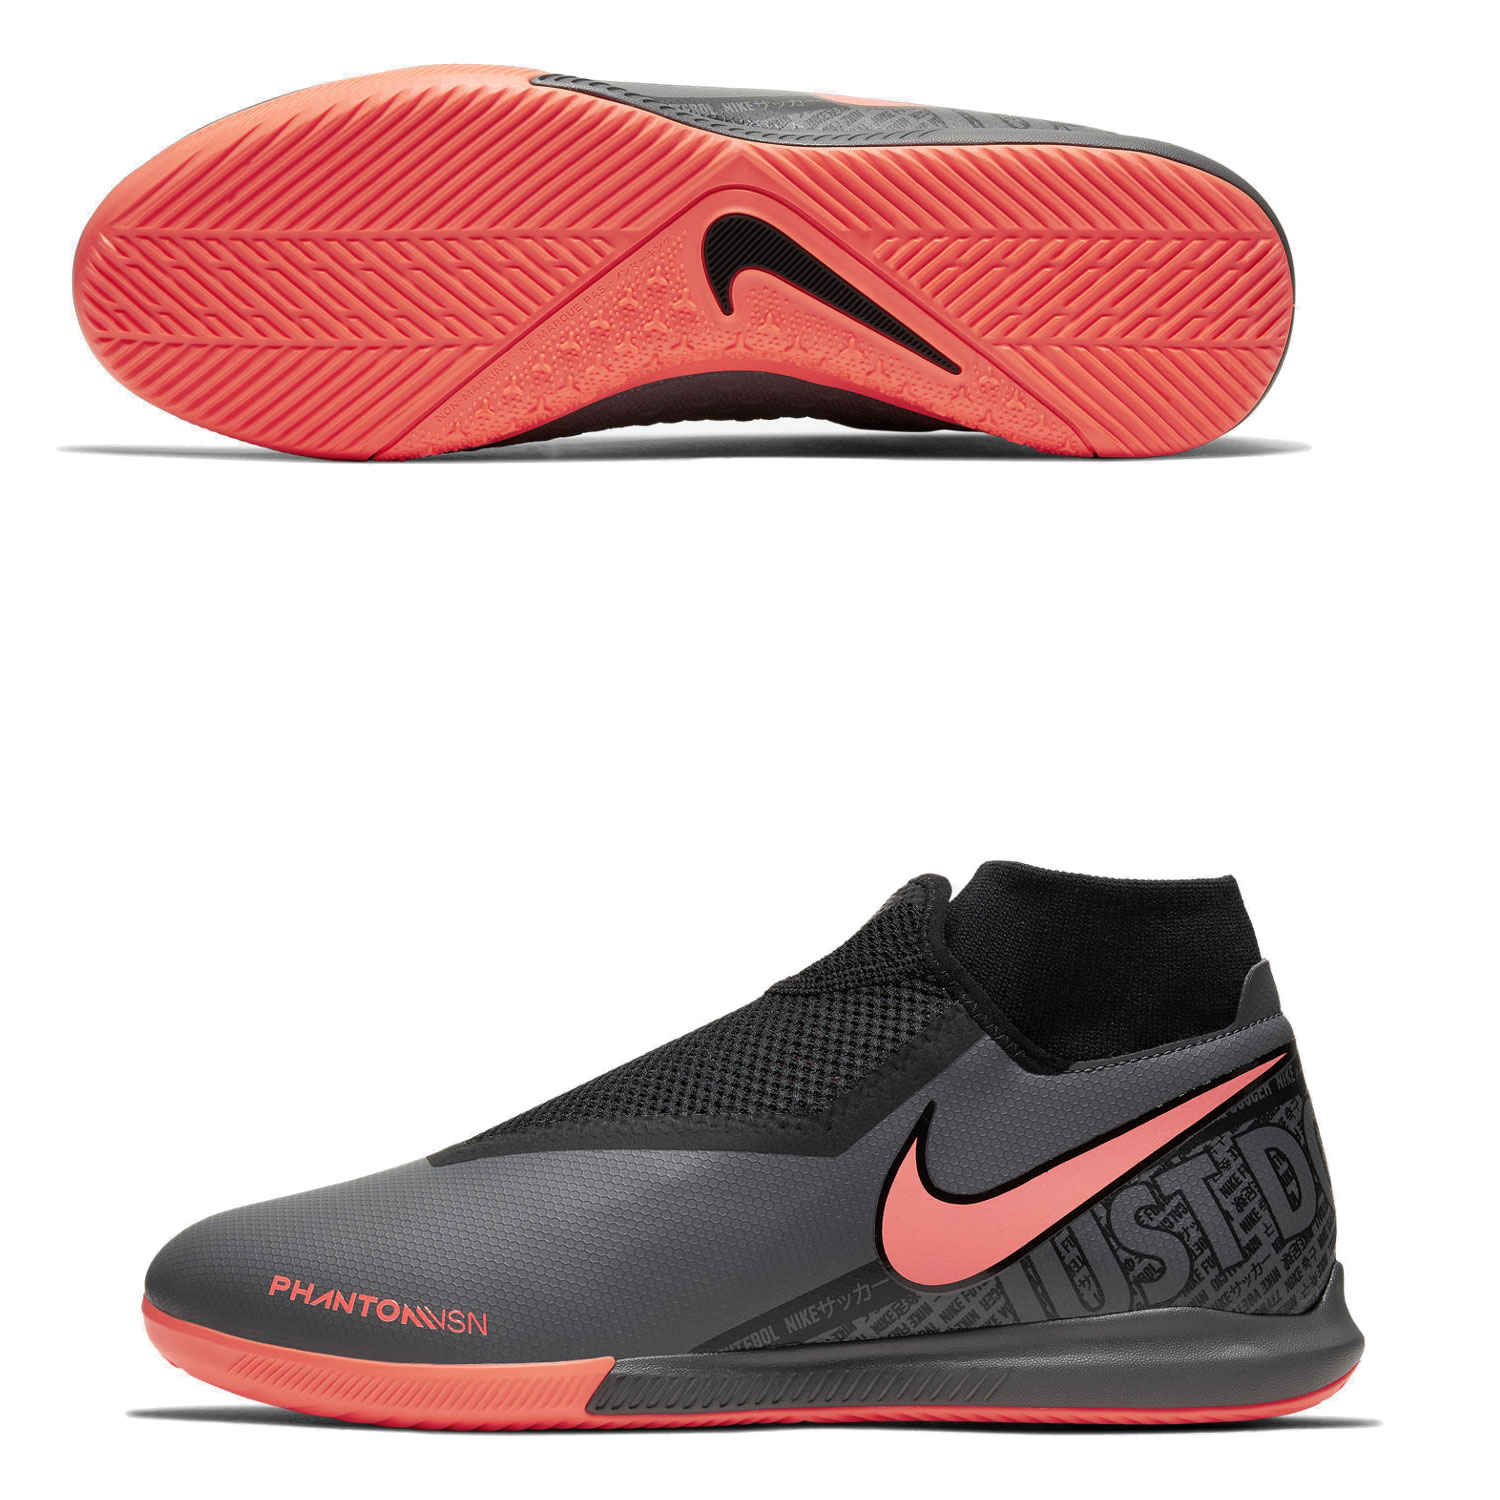 NIKE PHANTOM VSN ACADEMY DF IC AO3267-080